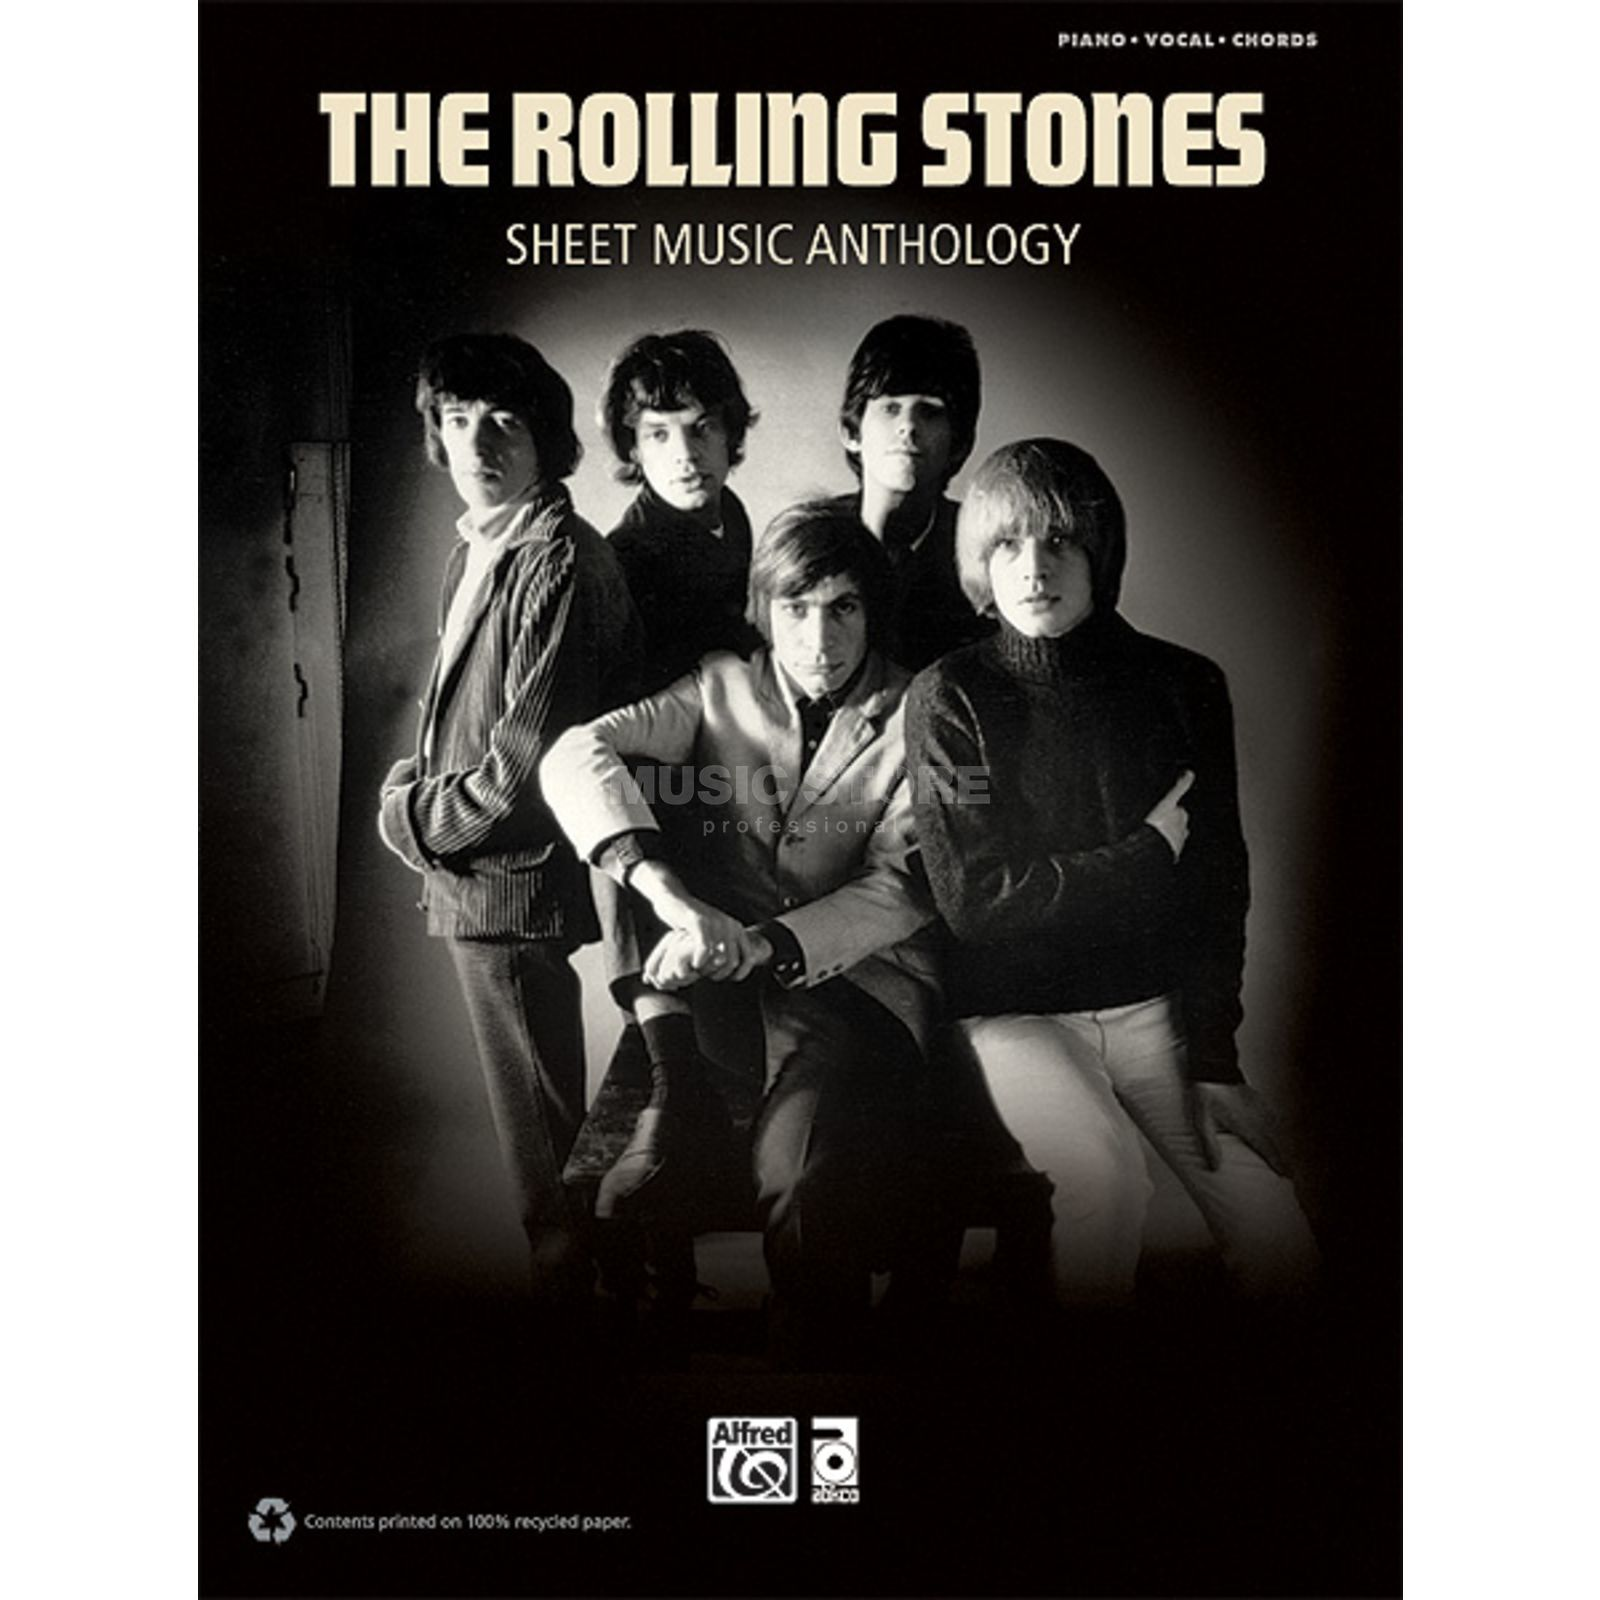 Alfred Music The Rolling Stones: Sheet Music Anthology Produktbild